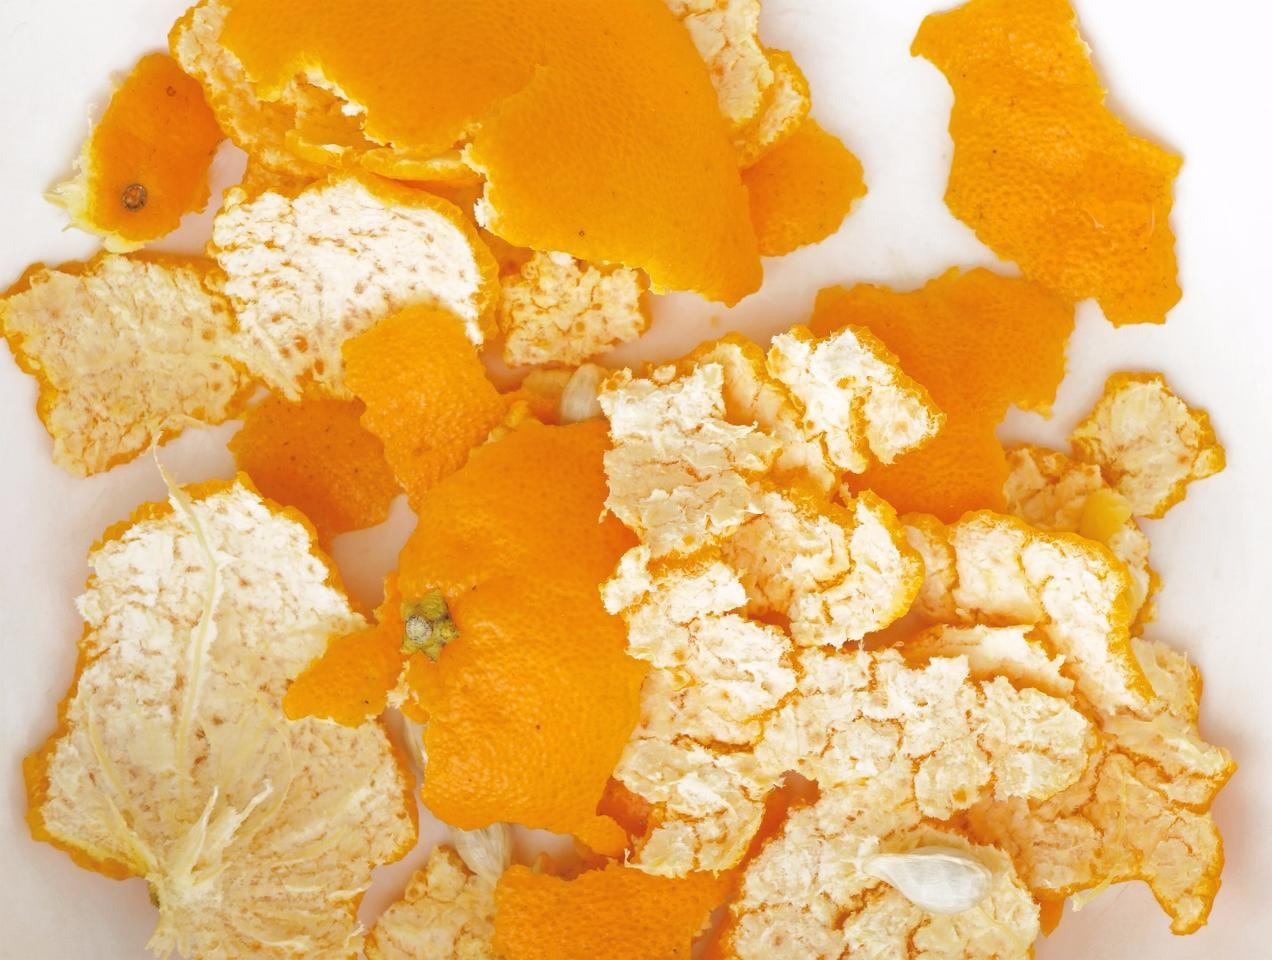 Orange and grapefruit peels have been used to help purify polluted water